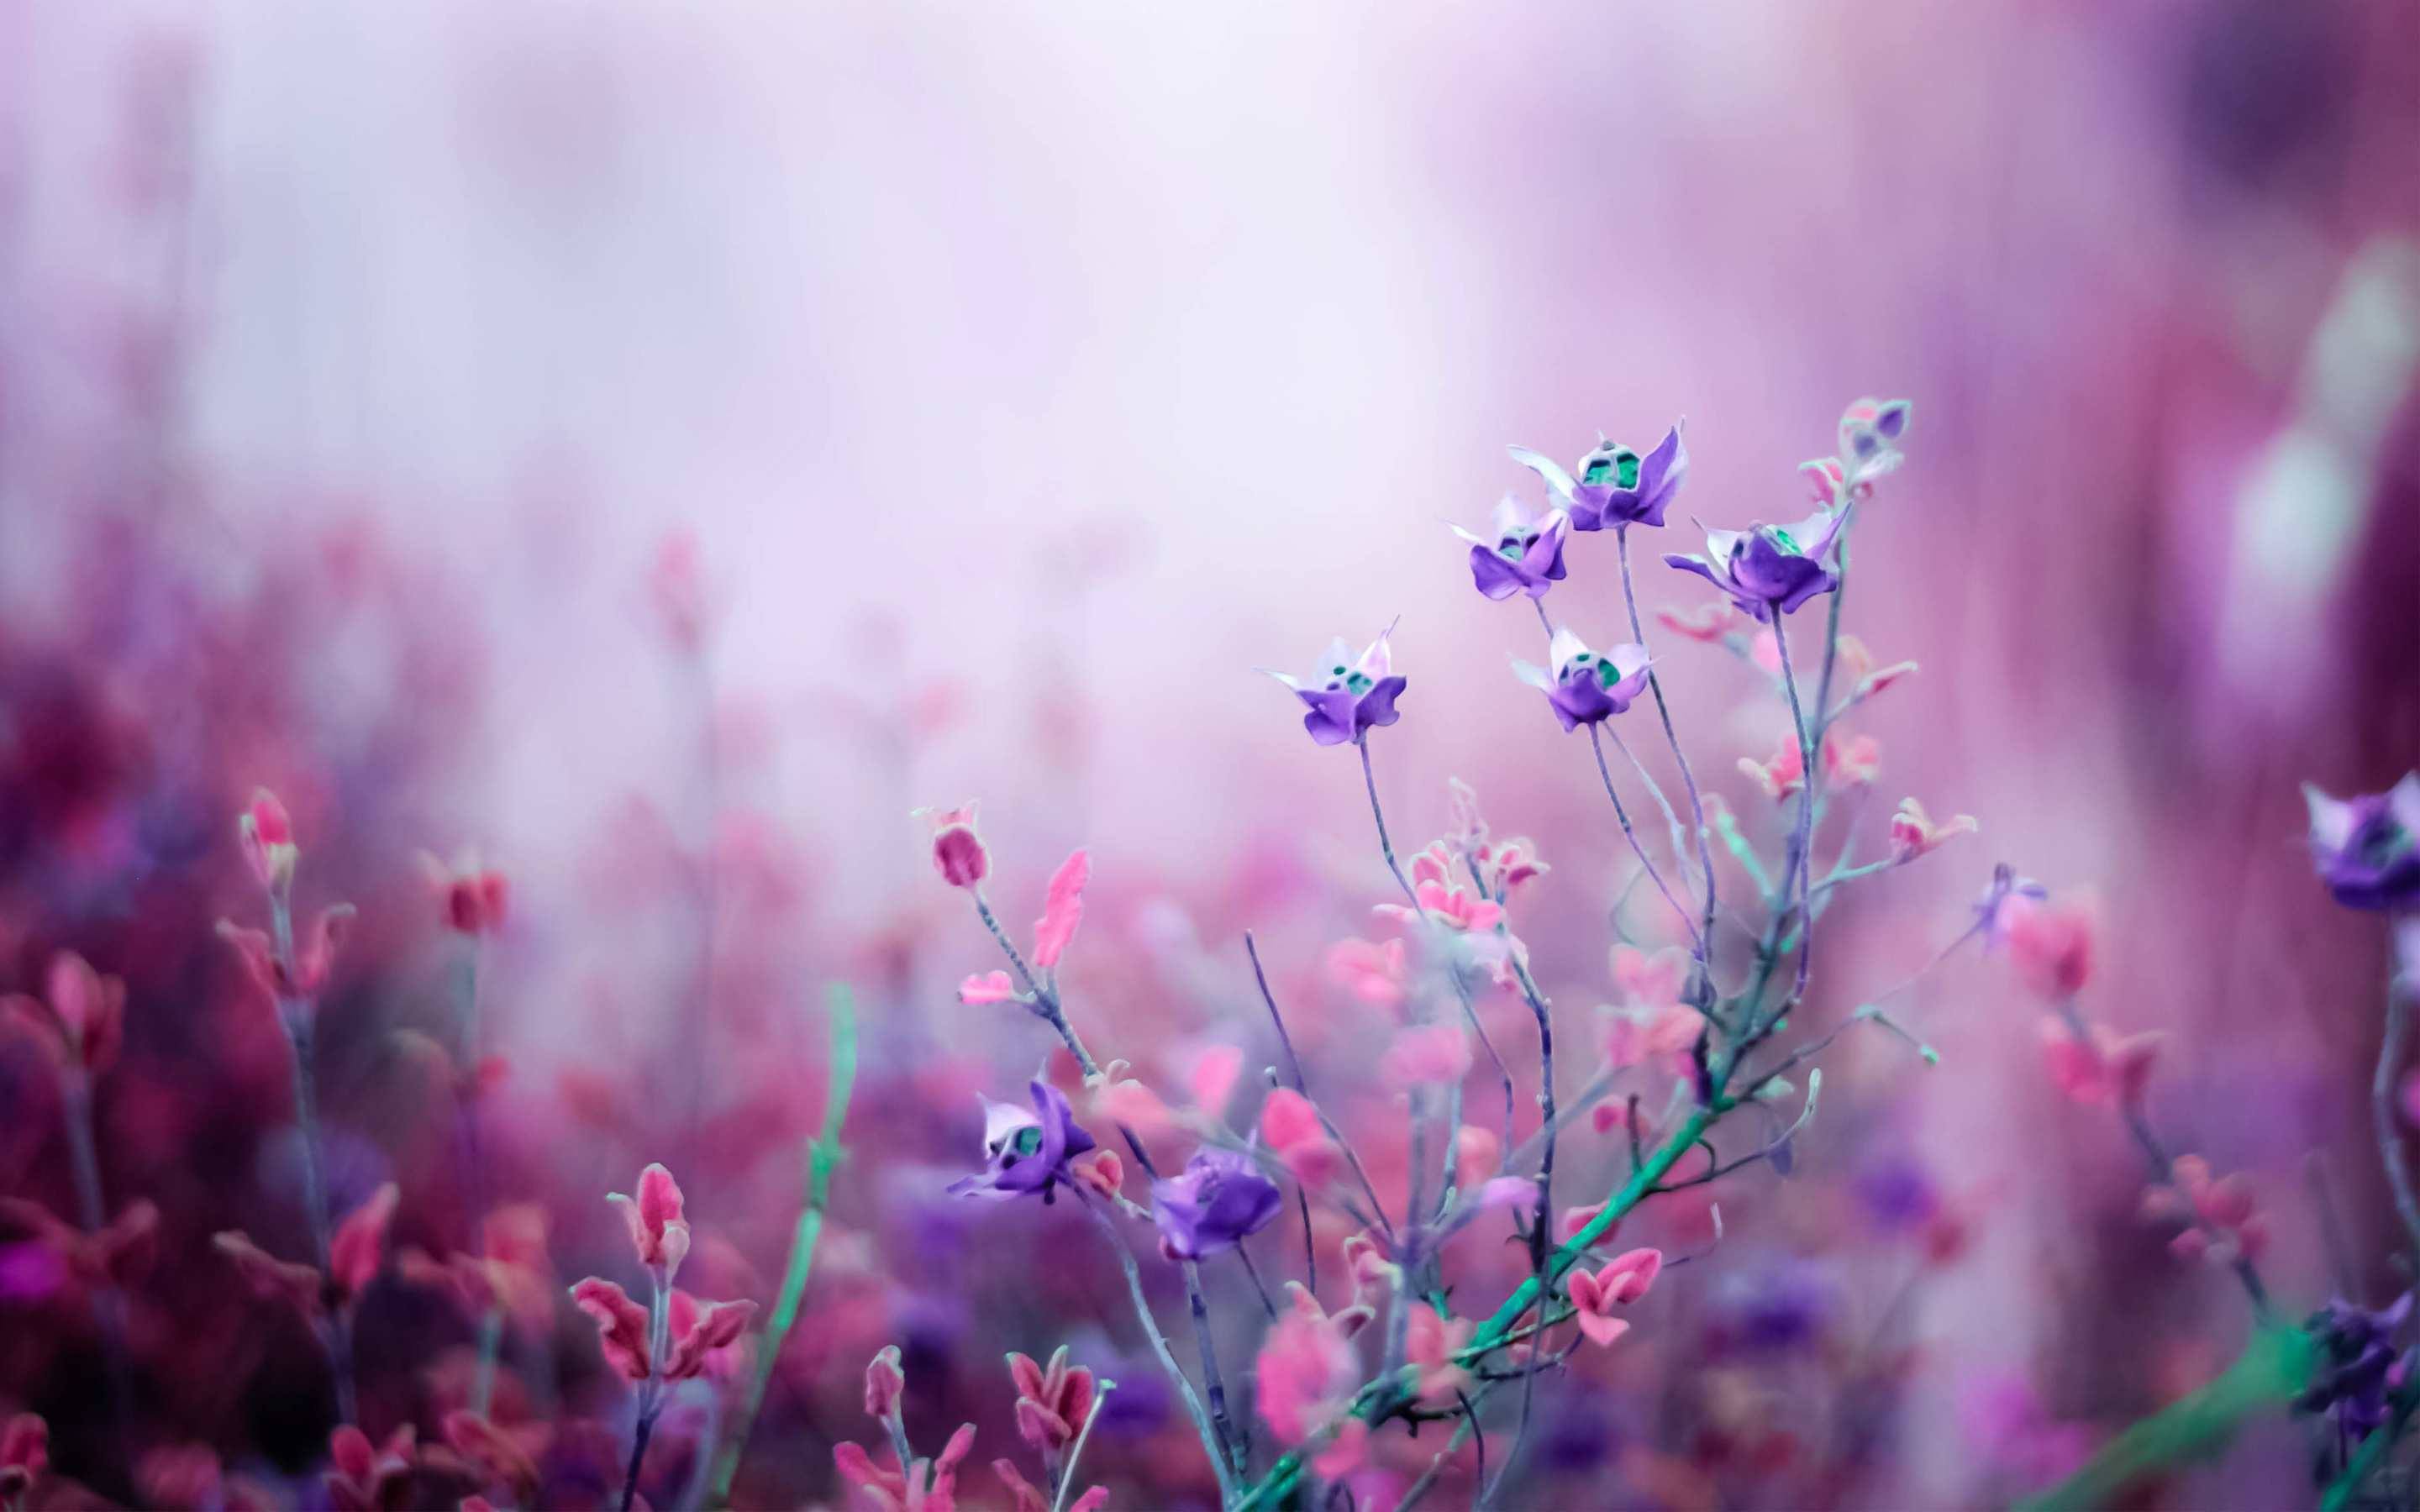 A Field Of Purple Flowers In The Mist